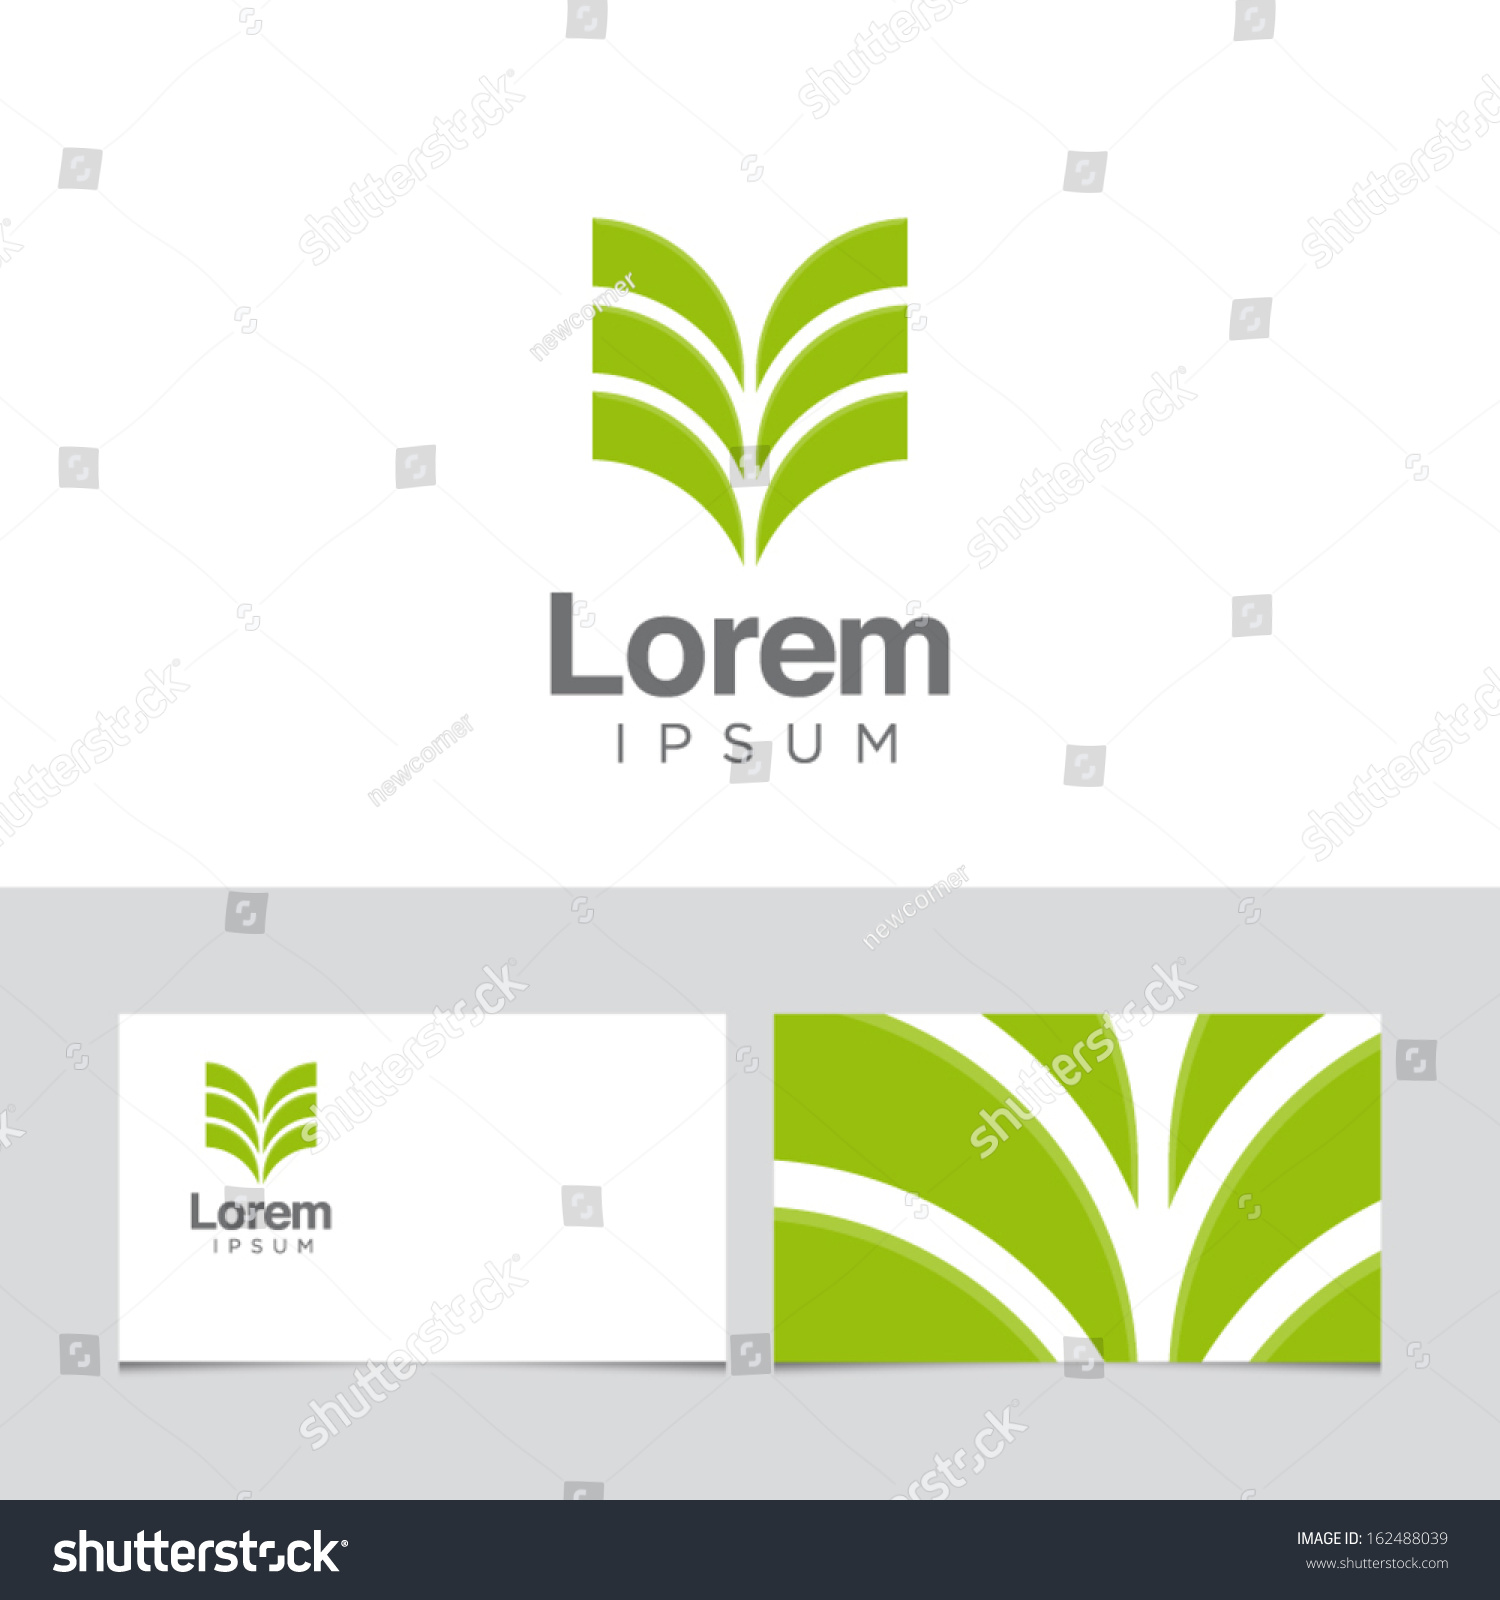 icon design element business card template 162488039 shutterstock. Black Bedroom Furniture Sets. Home Design Ideas